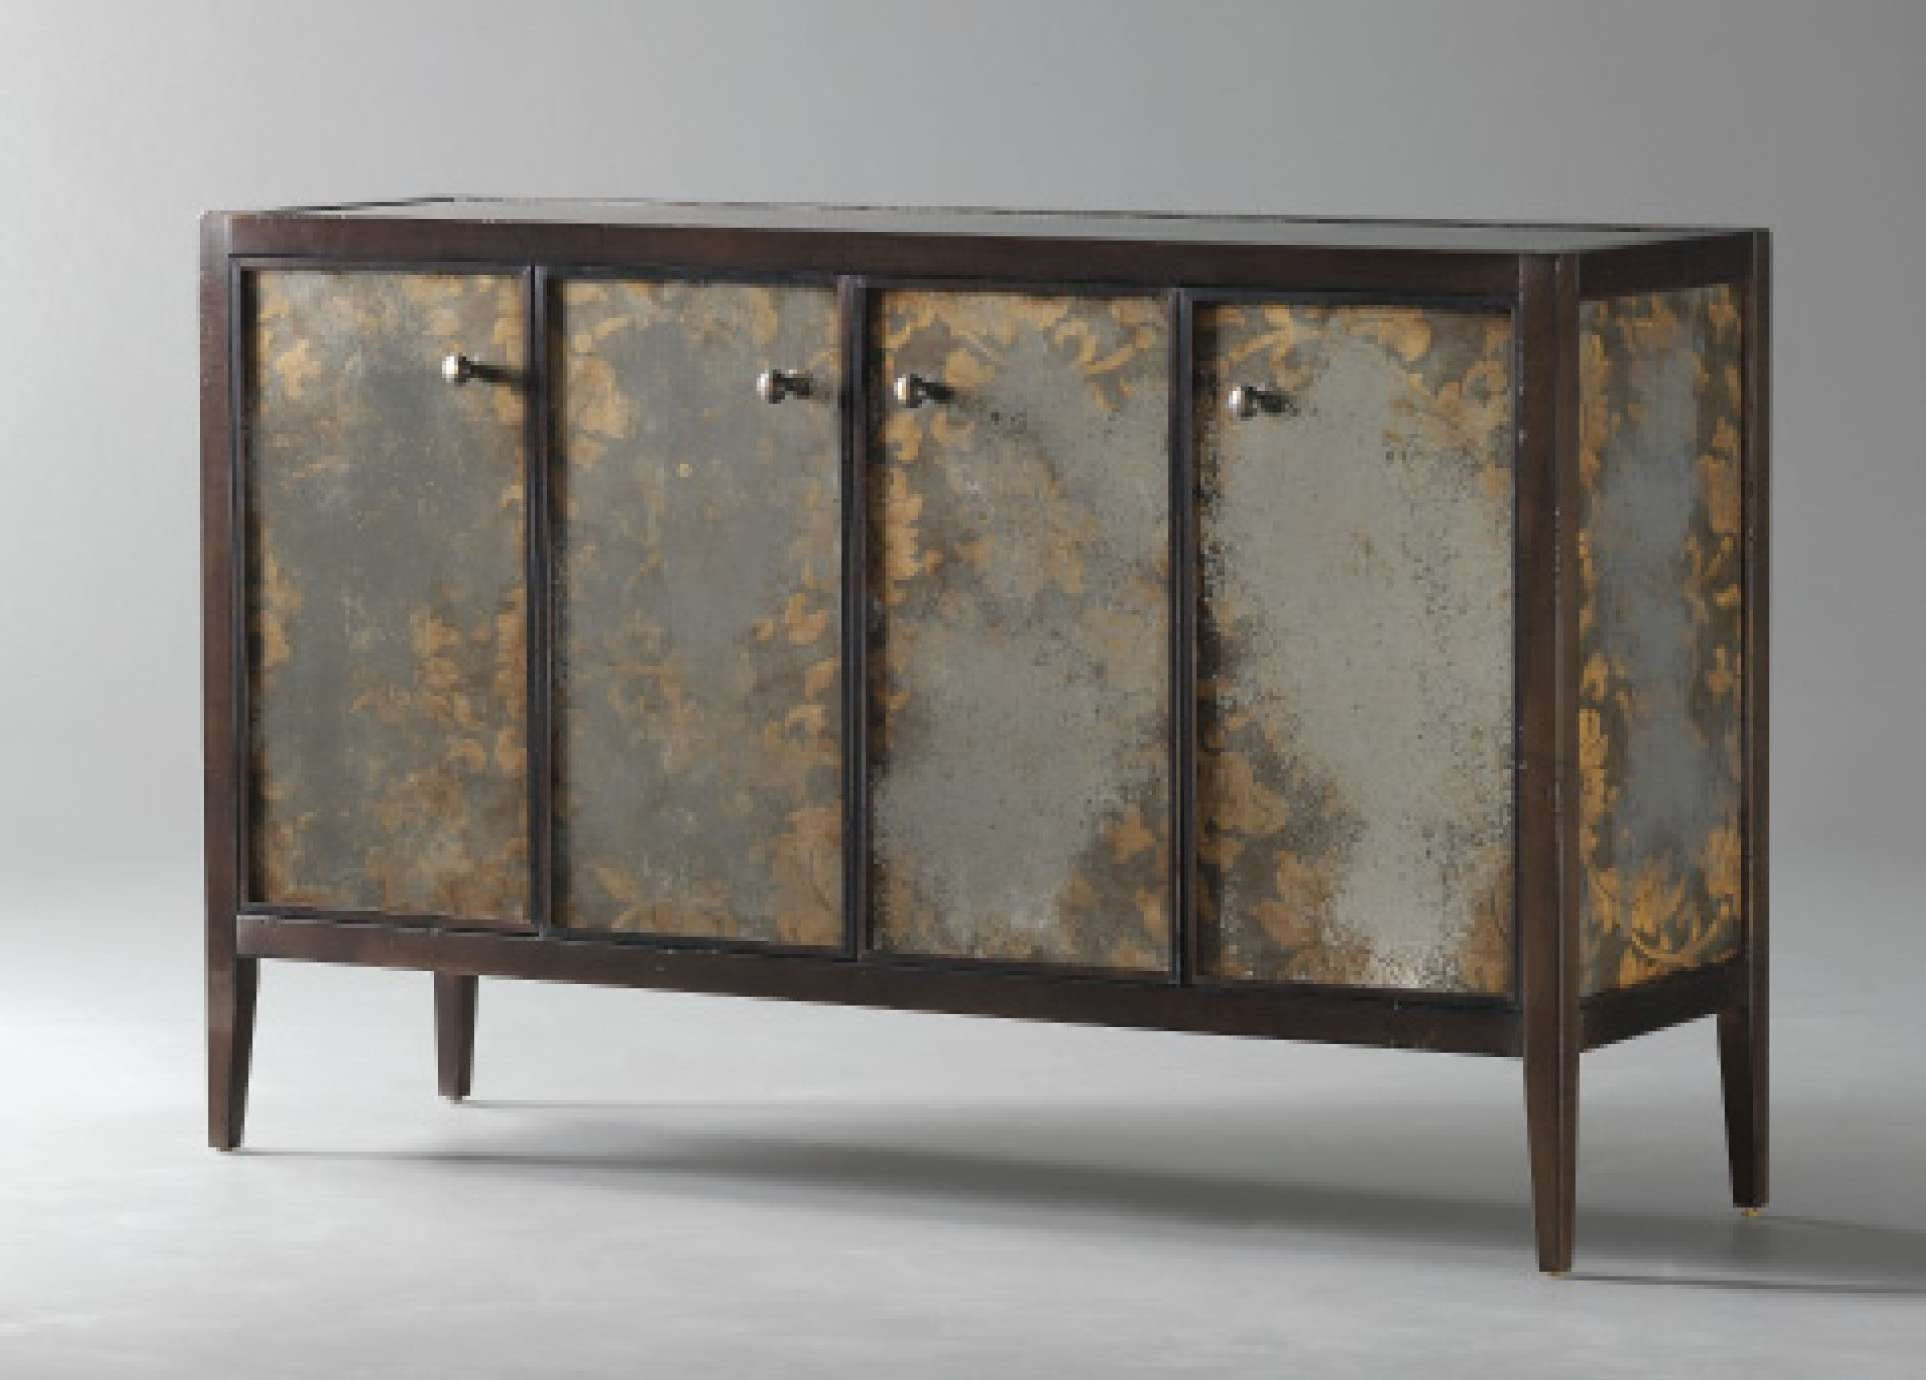 Console Tables : Elegant Mirrored Buffet Console Table Front Entry Intended For Mirrored Sideboards And Buffets (View 11 of 20)